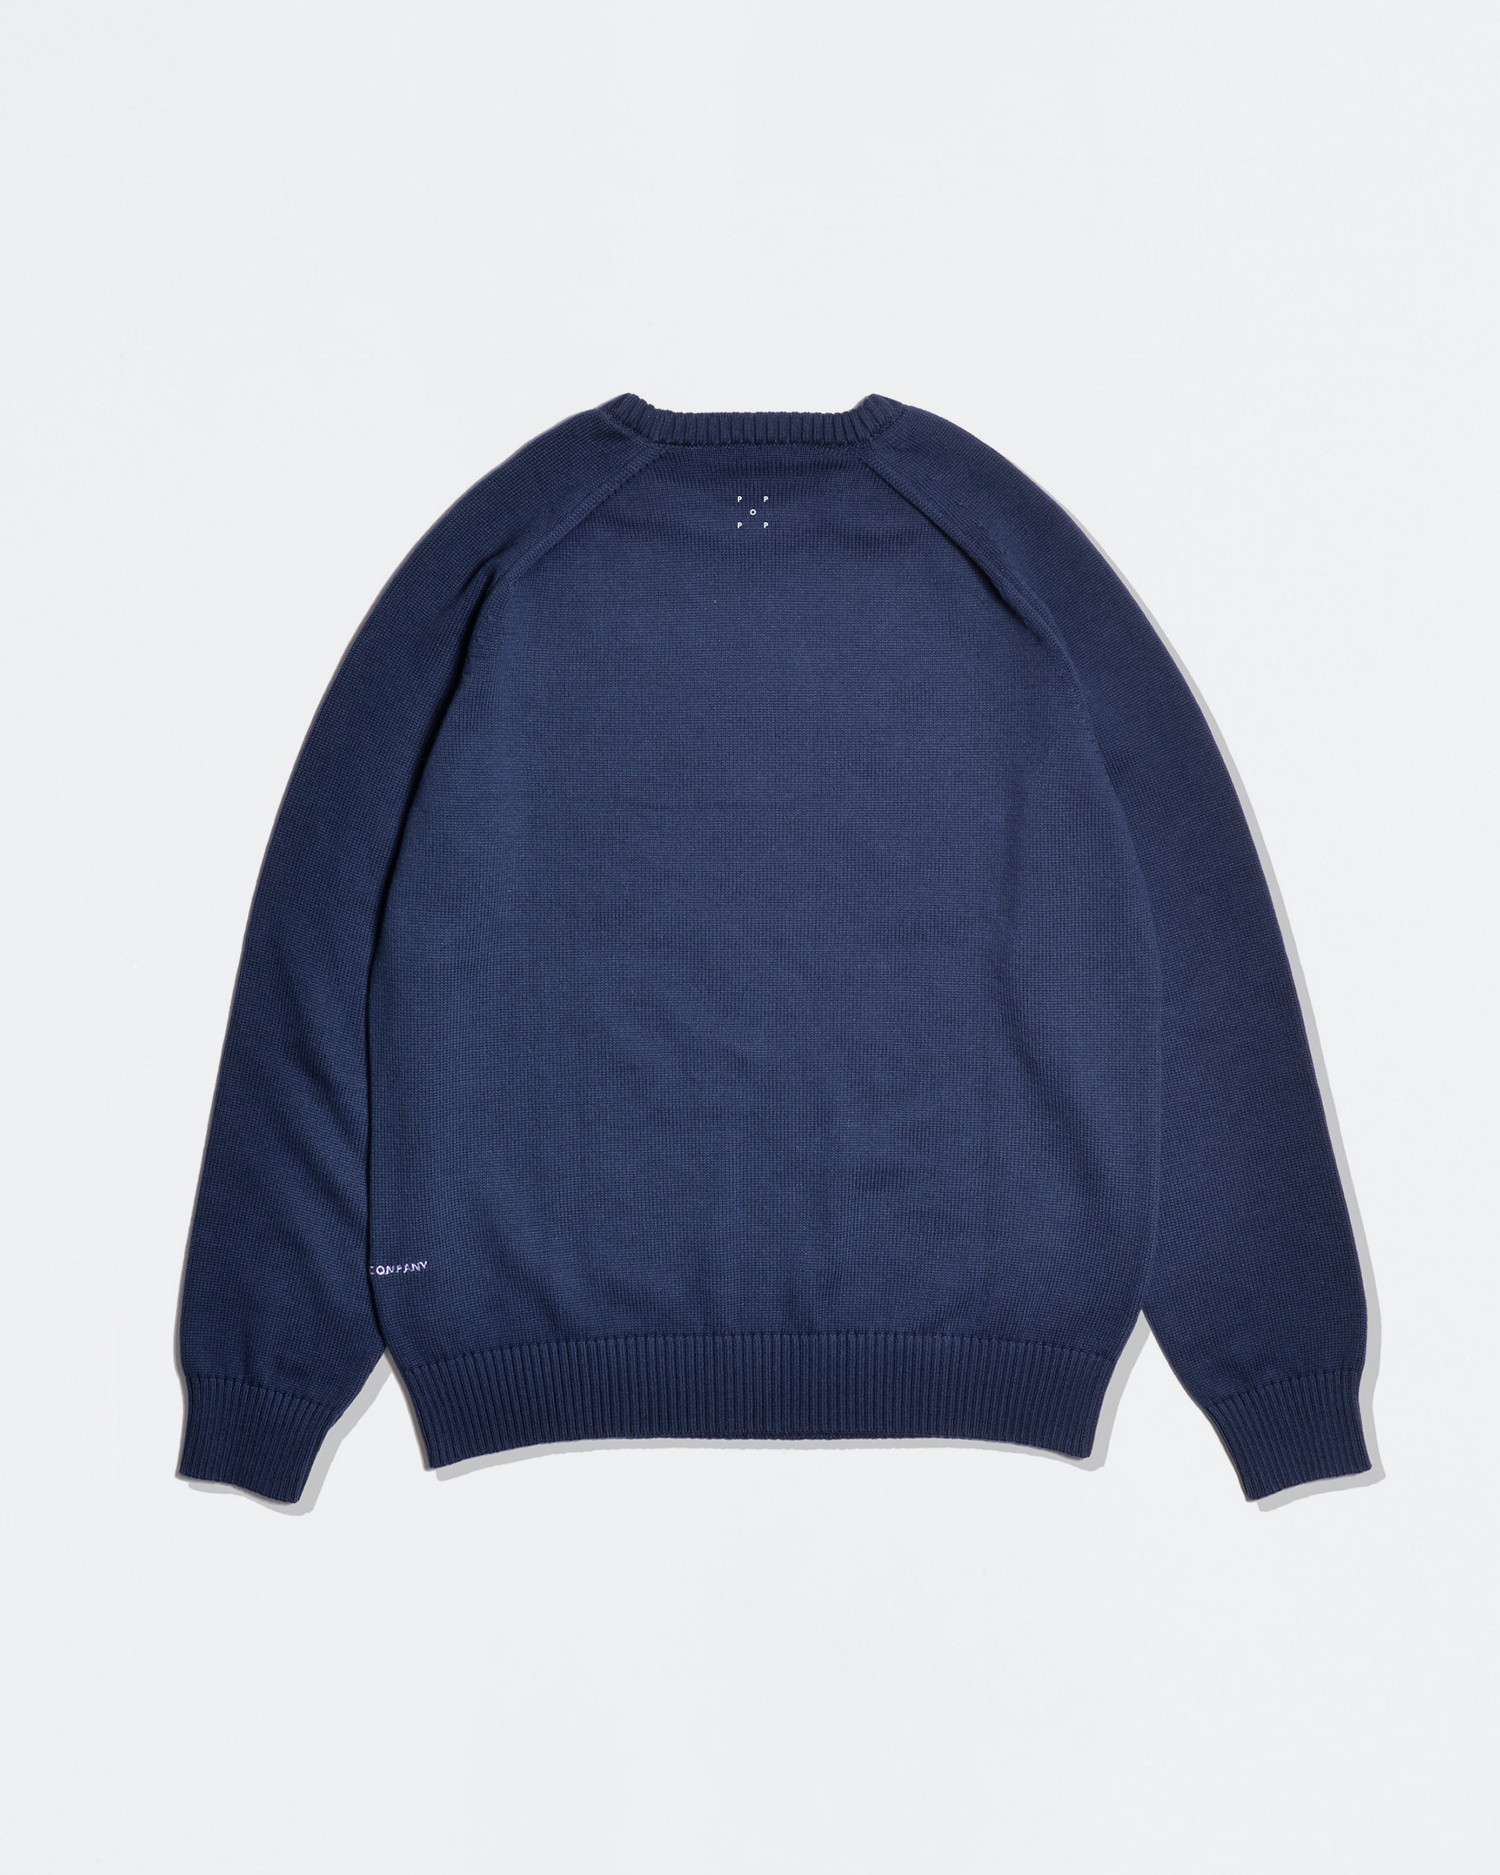 Pop Trading Co X Popeye knit navy